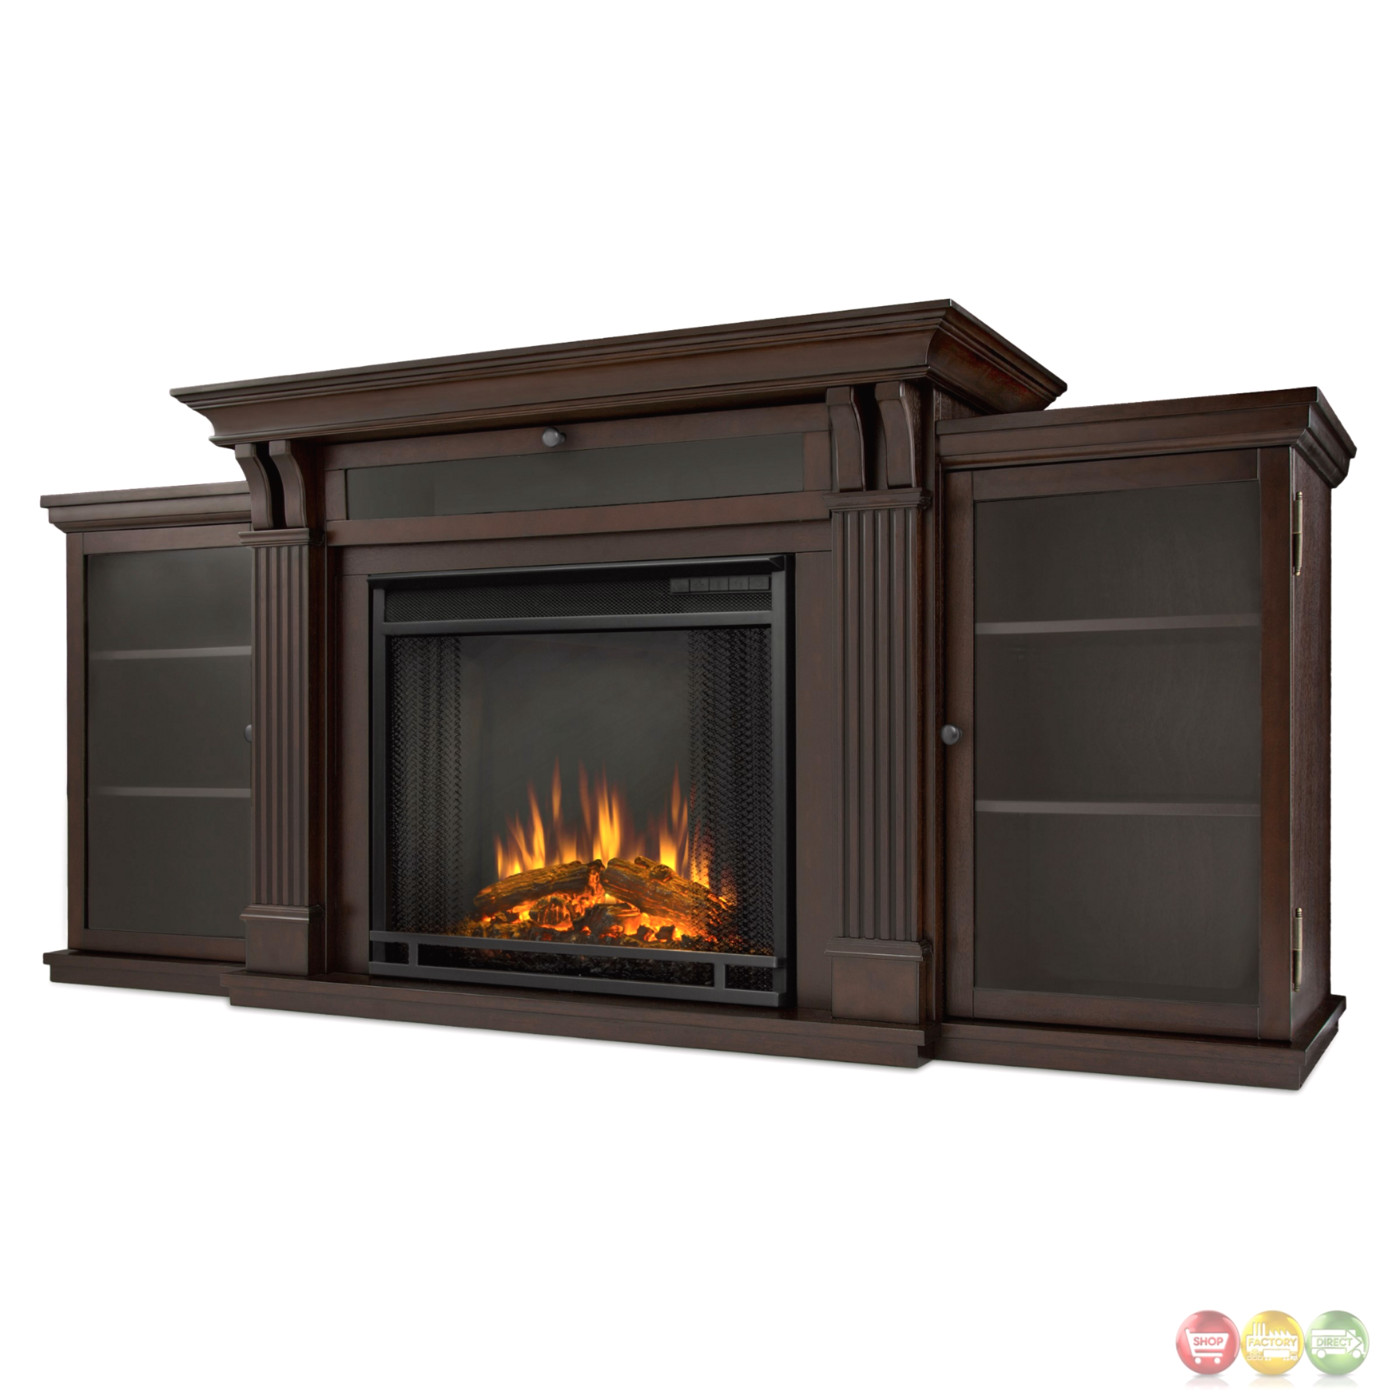 Calie Entertainment Center Electric Led Heater Fireplace In Walnut 67x31